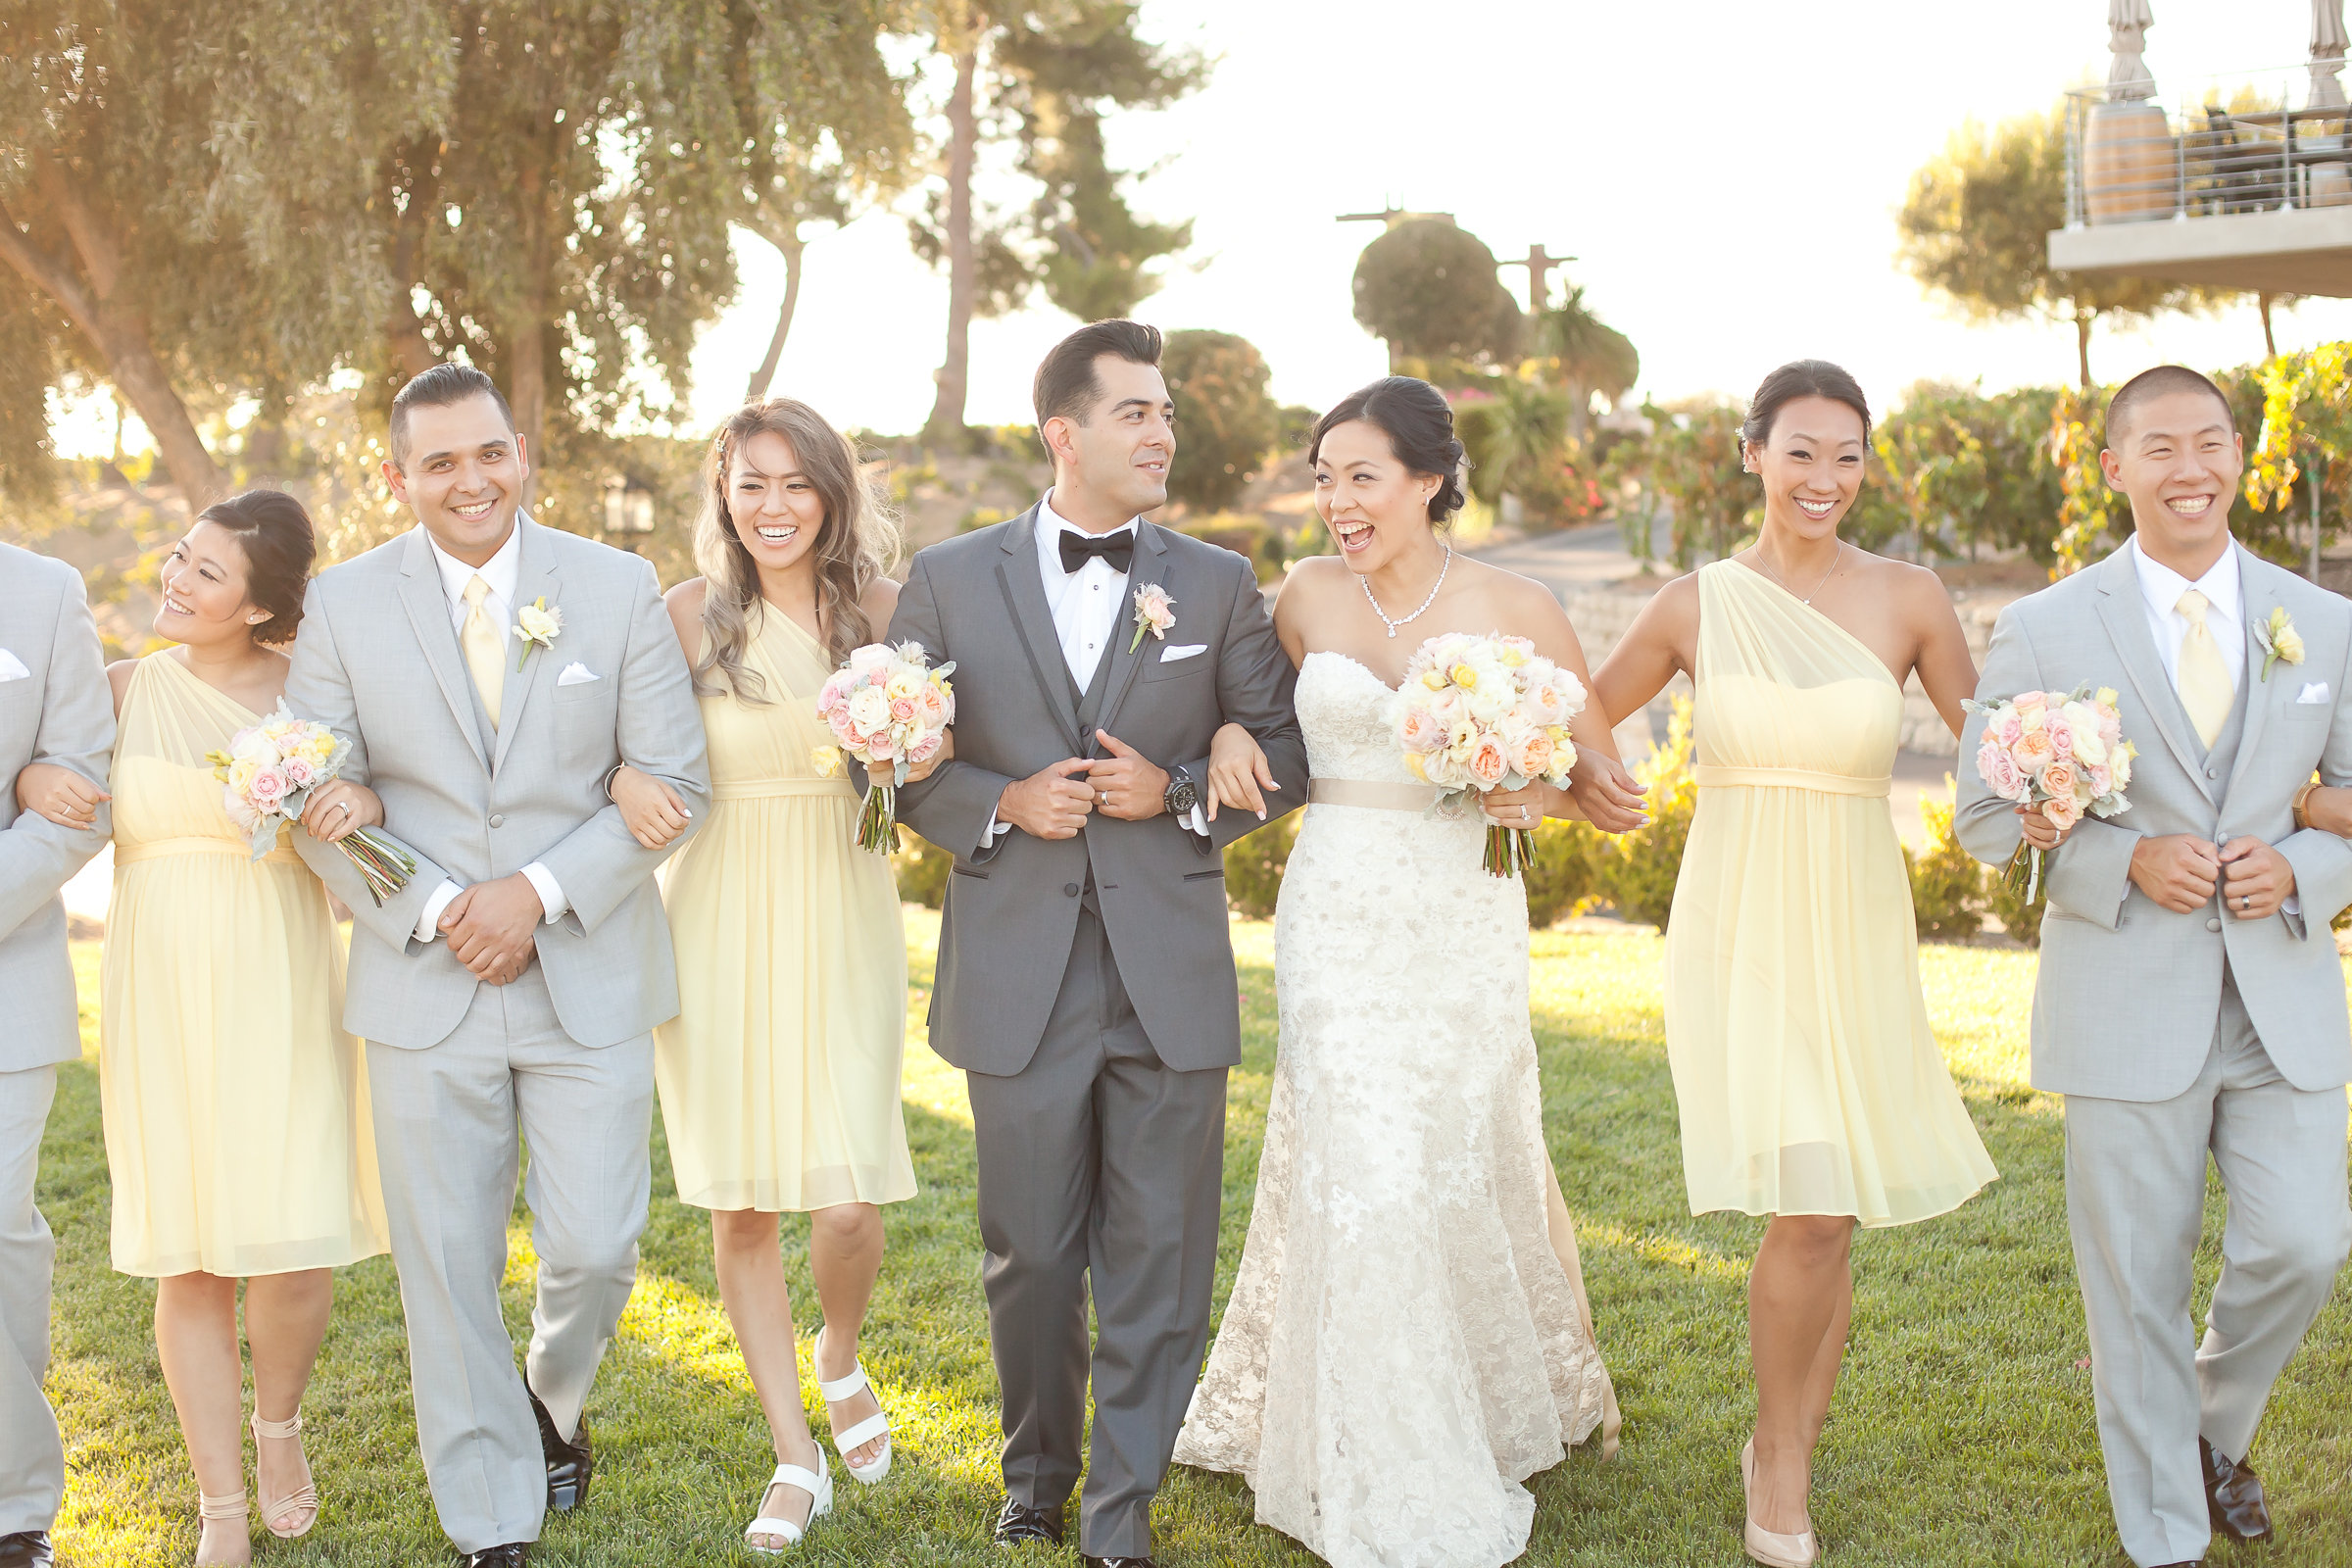 Yellow and Gray Bridal Party | Michelle Garibay Events